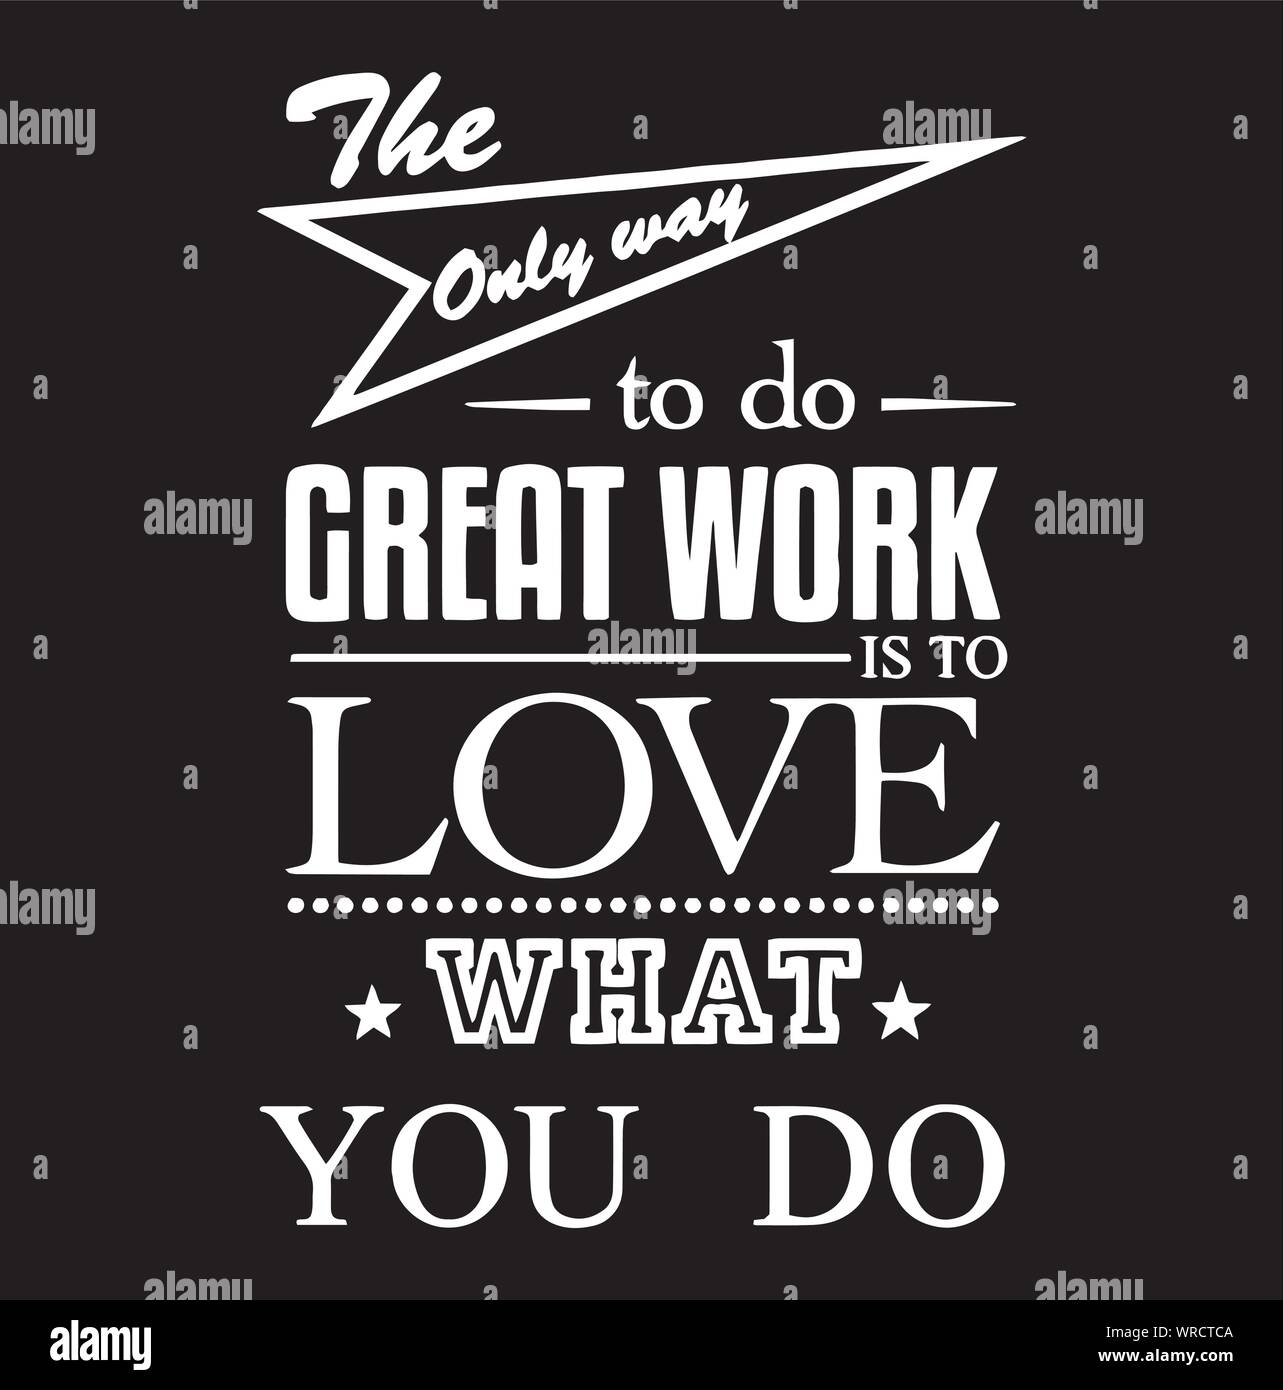 The Only Way To Do Great Work Is To Love What You Do Inspirational Quotes And Motivational Typography Art Lettering Composition Vector Stock Vector Image Art Alamy